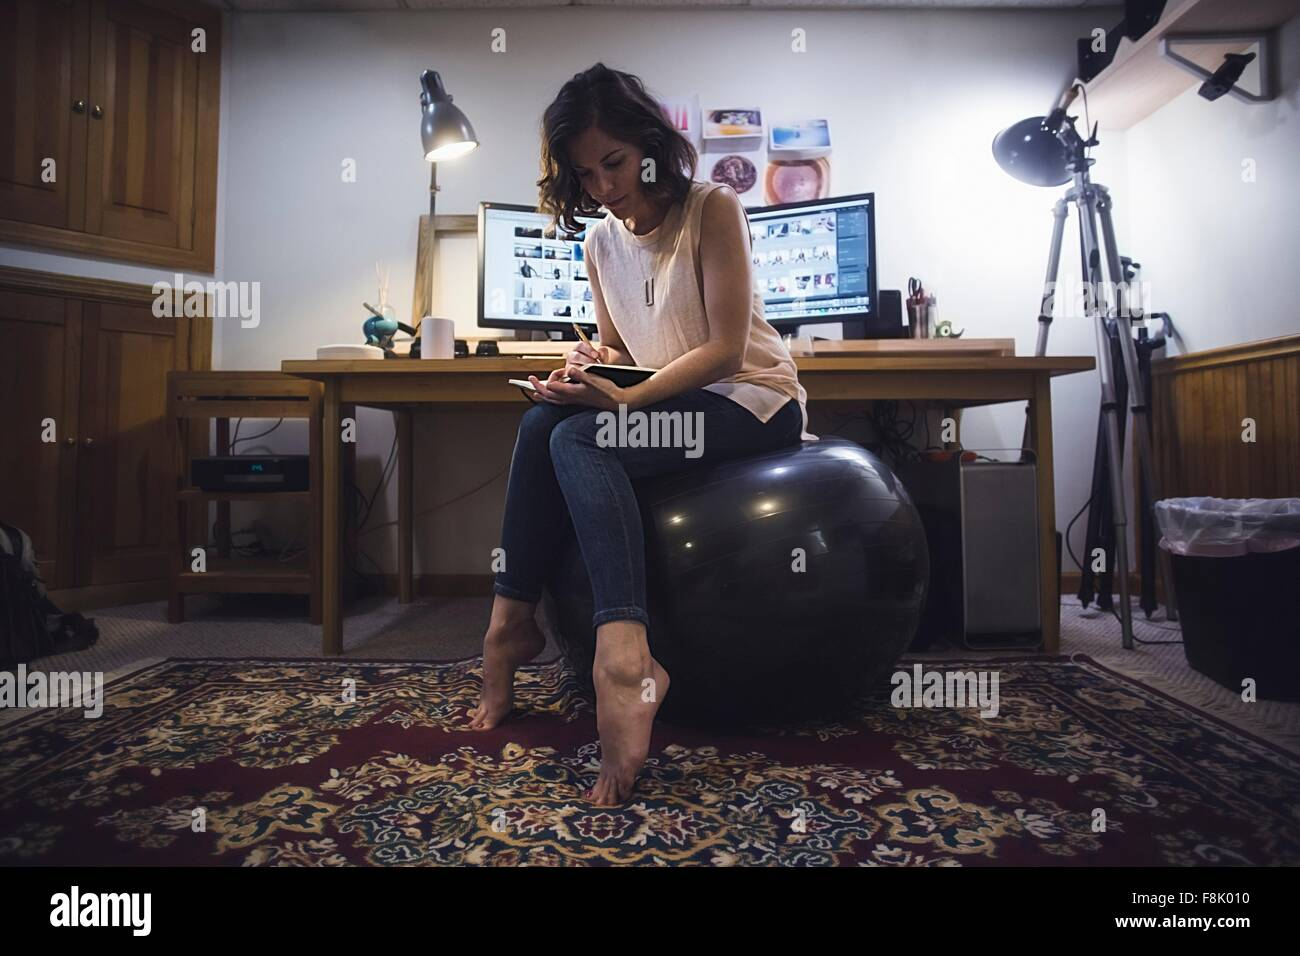 Mid adult woman sitting on yoga ball, writing in diary - Stock Image